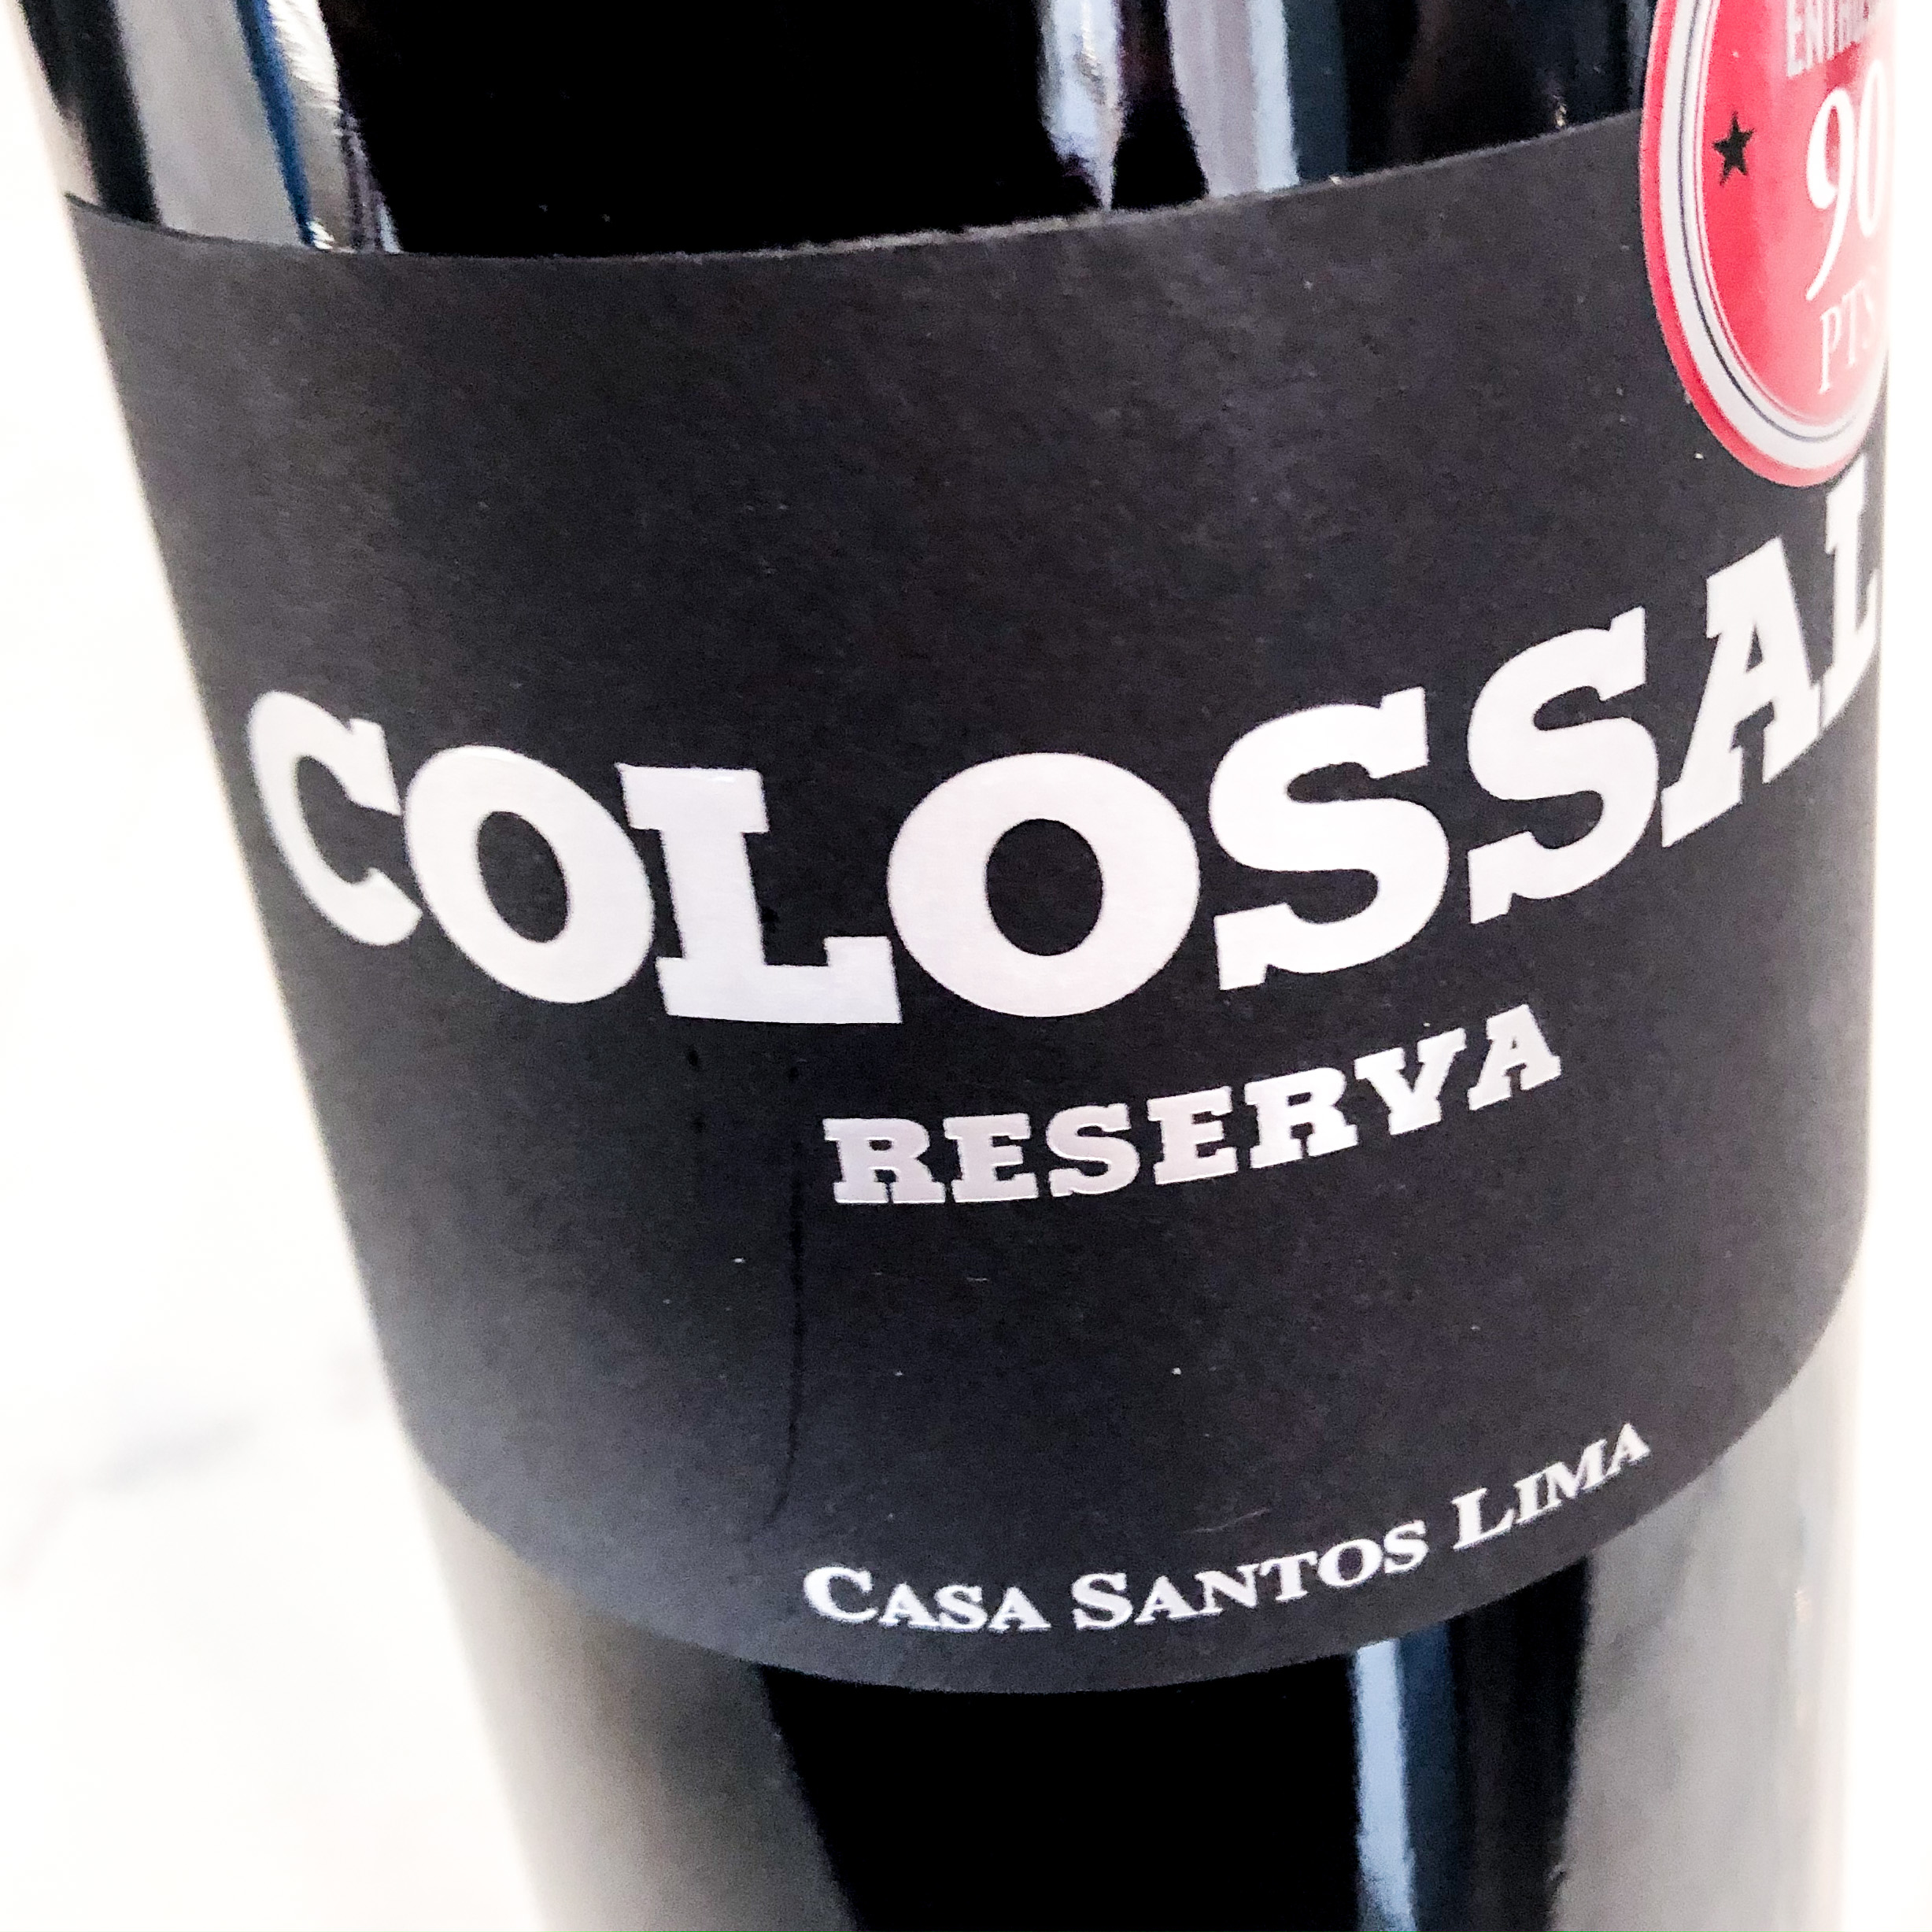 Colossal Reserva Red 2016